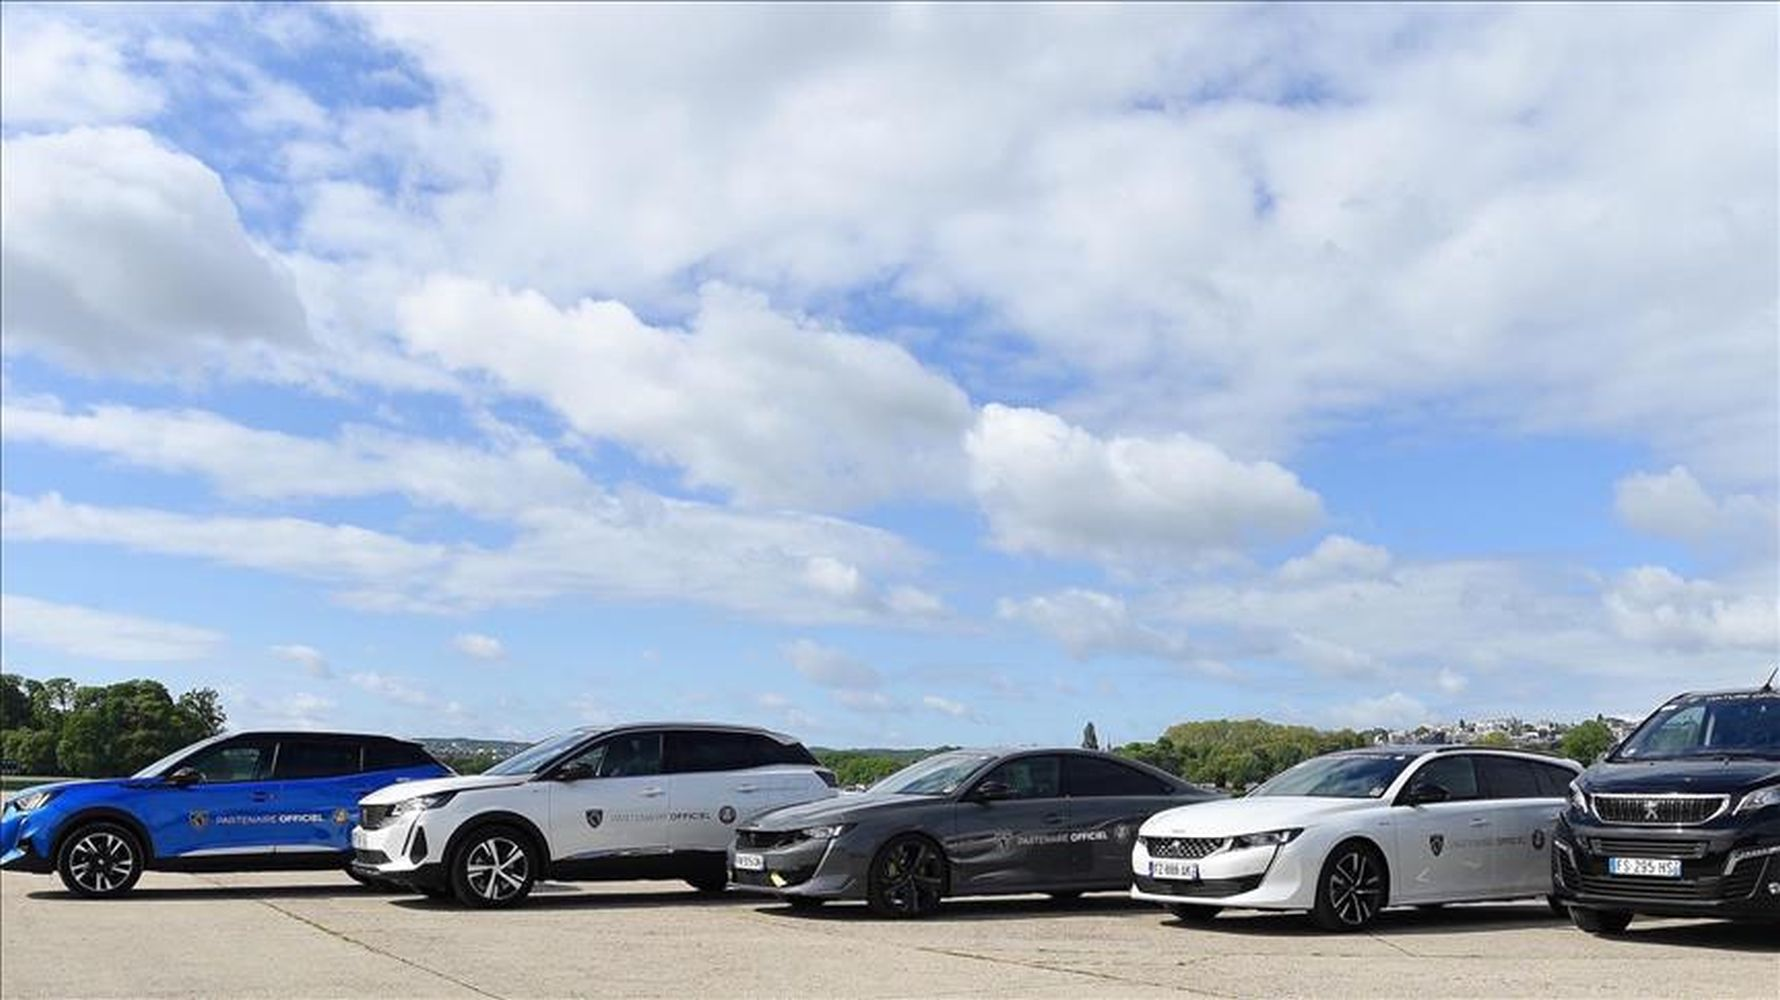 peugeot to provide transportation in france open tennis tournament